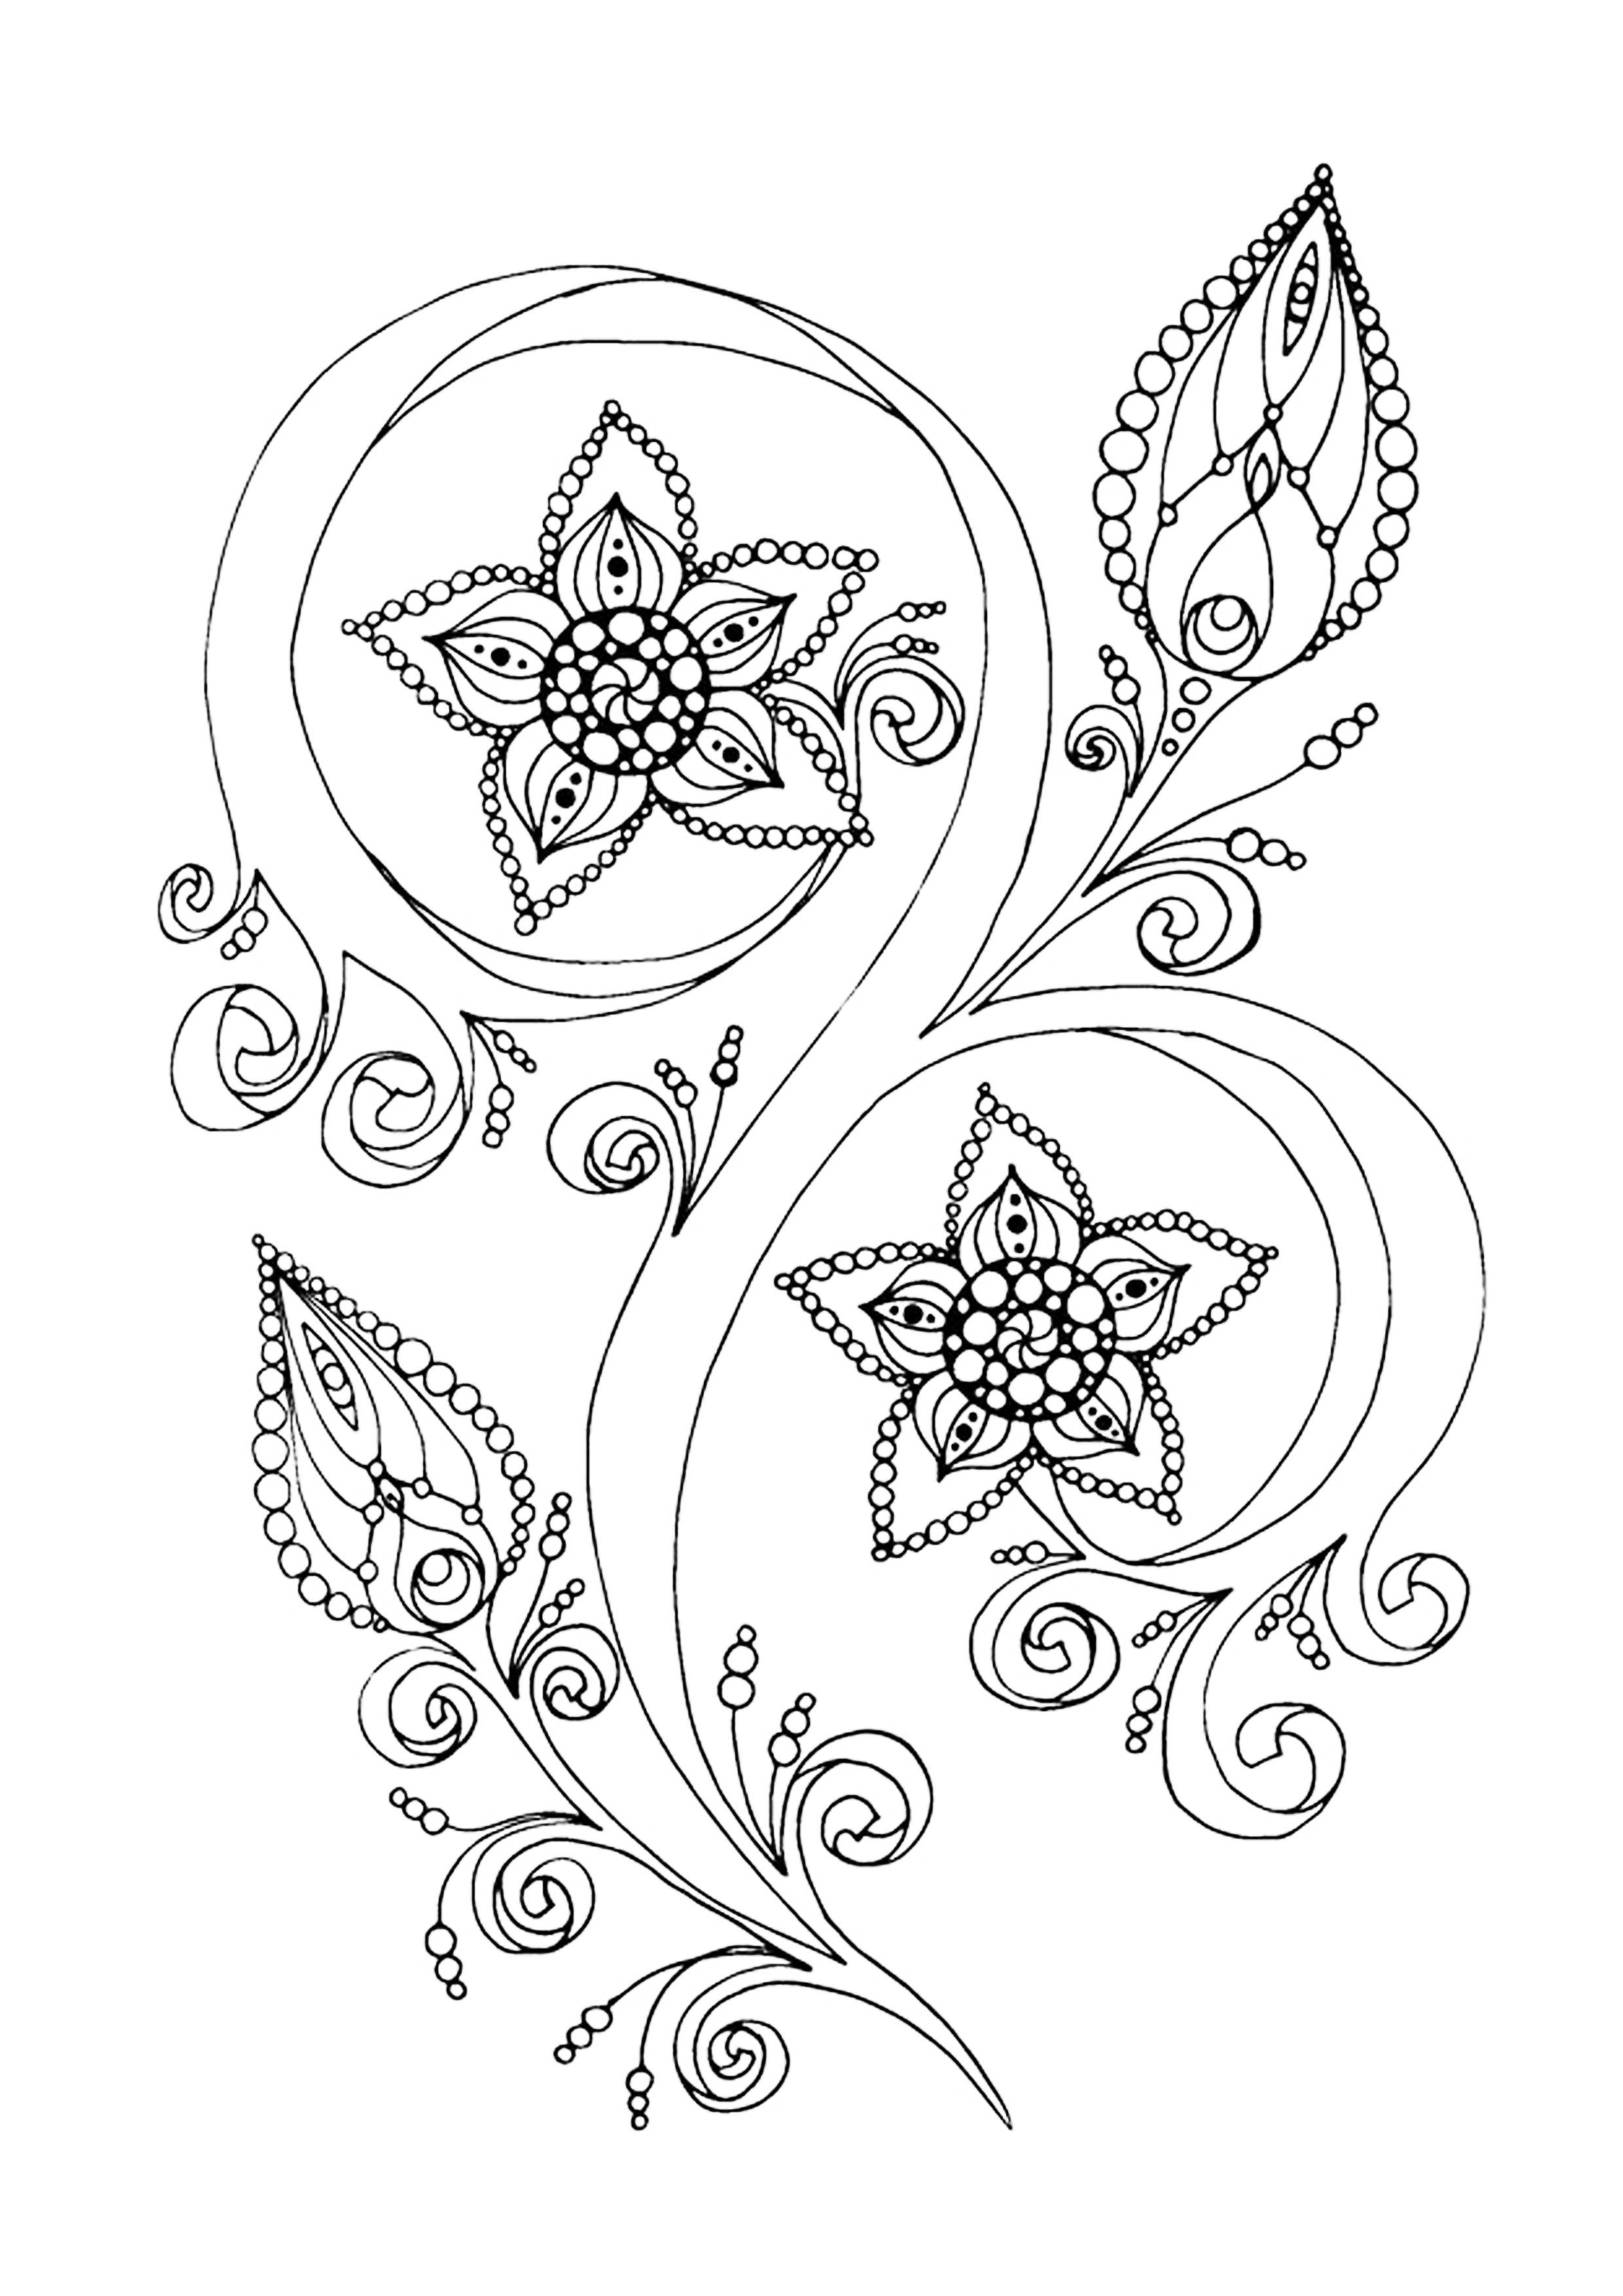 Zen Amp Anti Stress Coloring Page Abstract Pattern Inspired By Flowers N 3 By Juliasnegireva